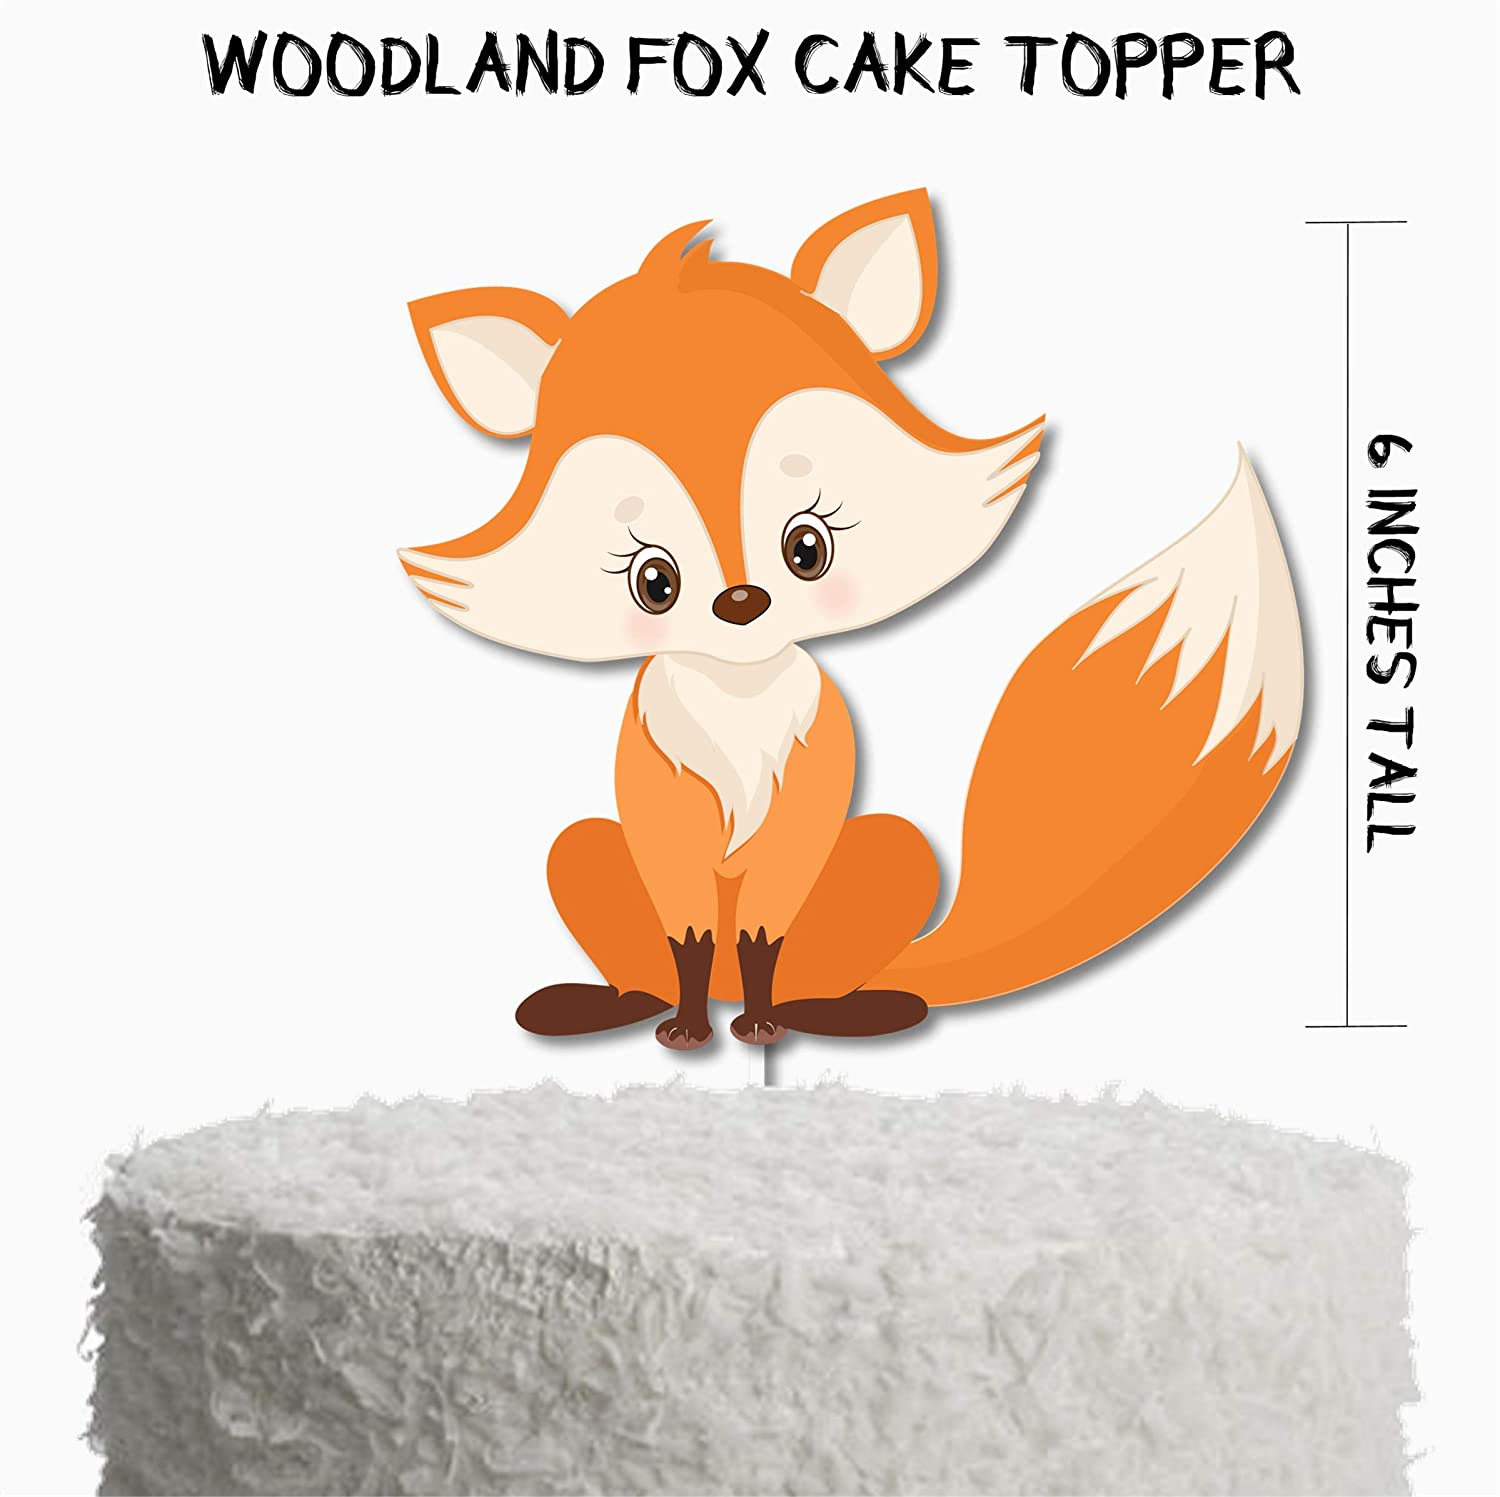 Woodland Fox Cake Topper, Woodland Fox Birthday Party Decor, Woodland Fox Party Supplies